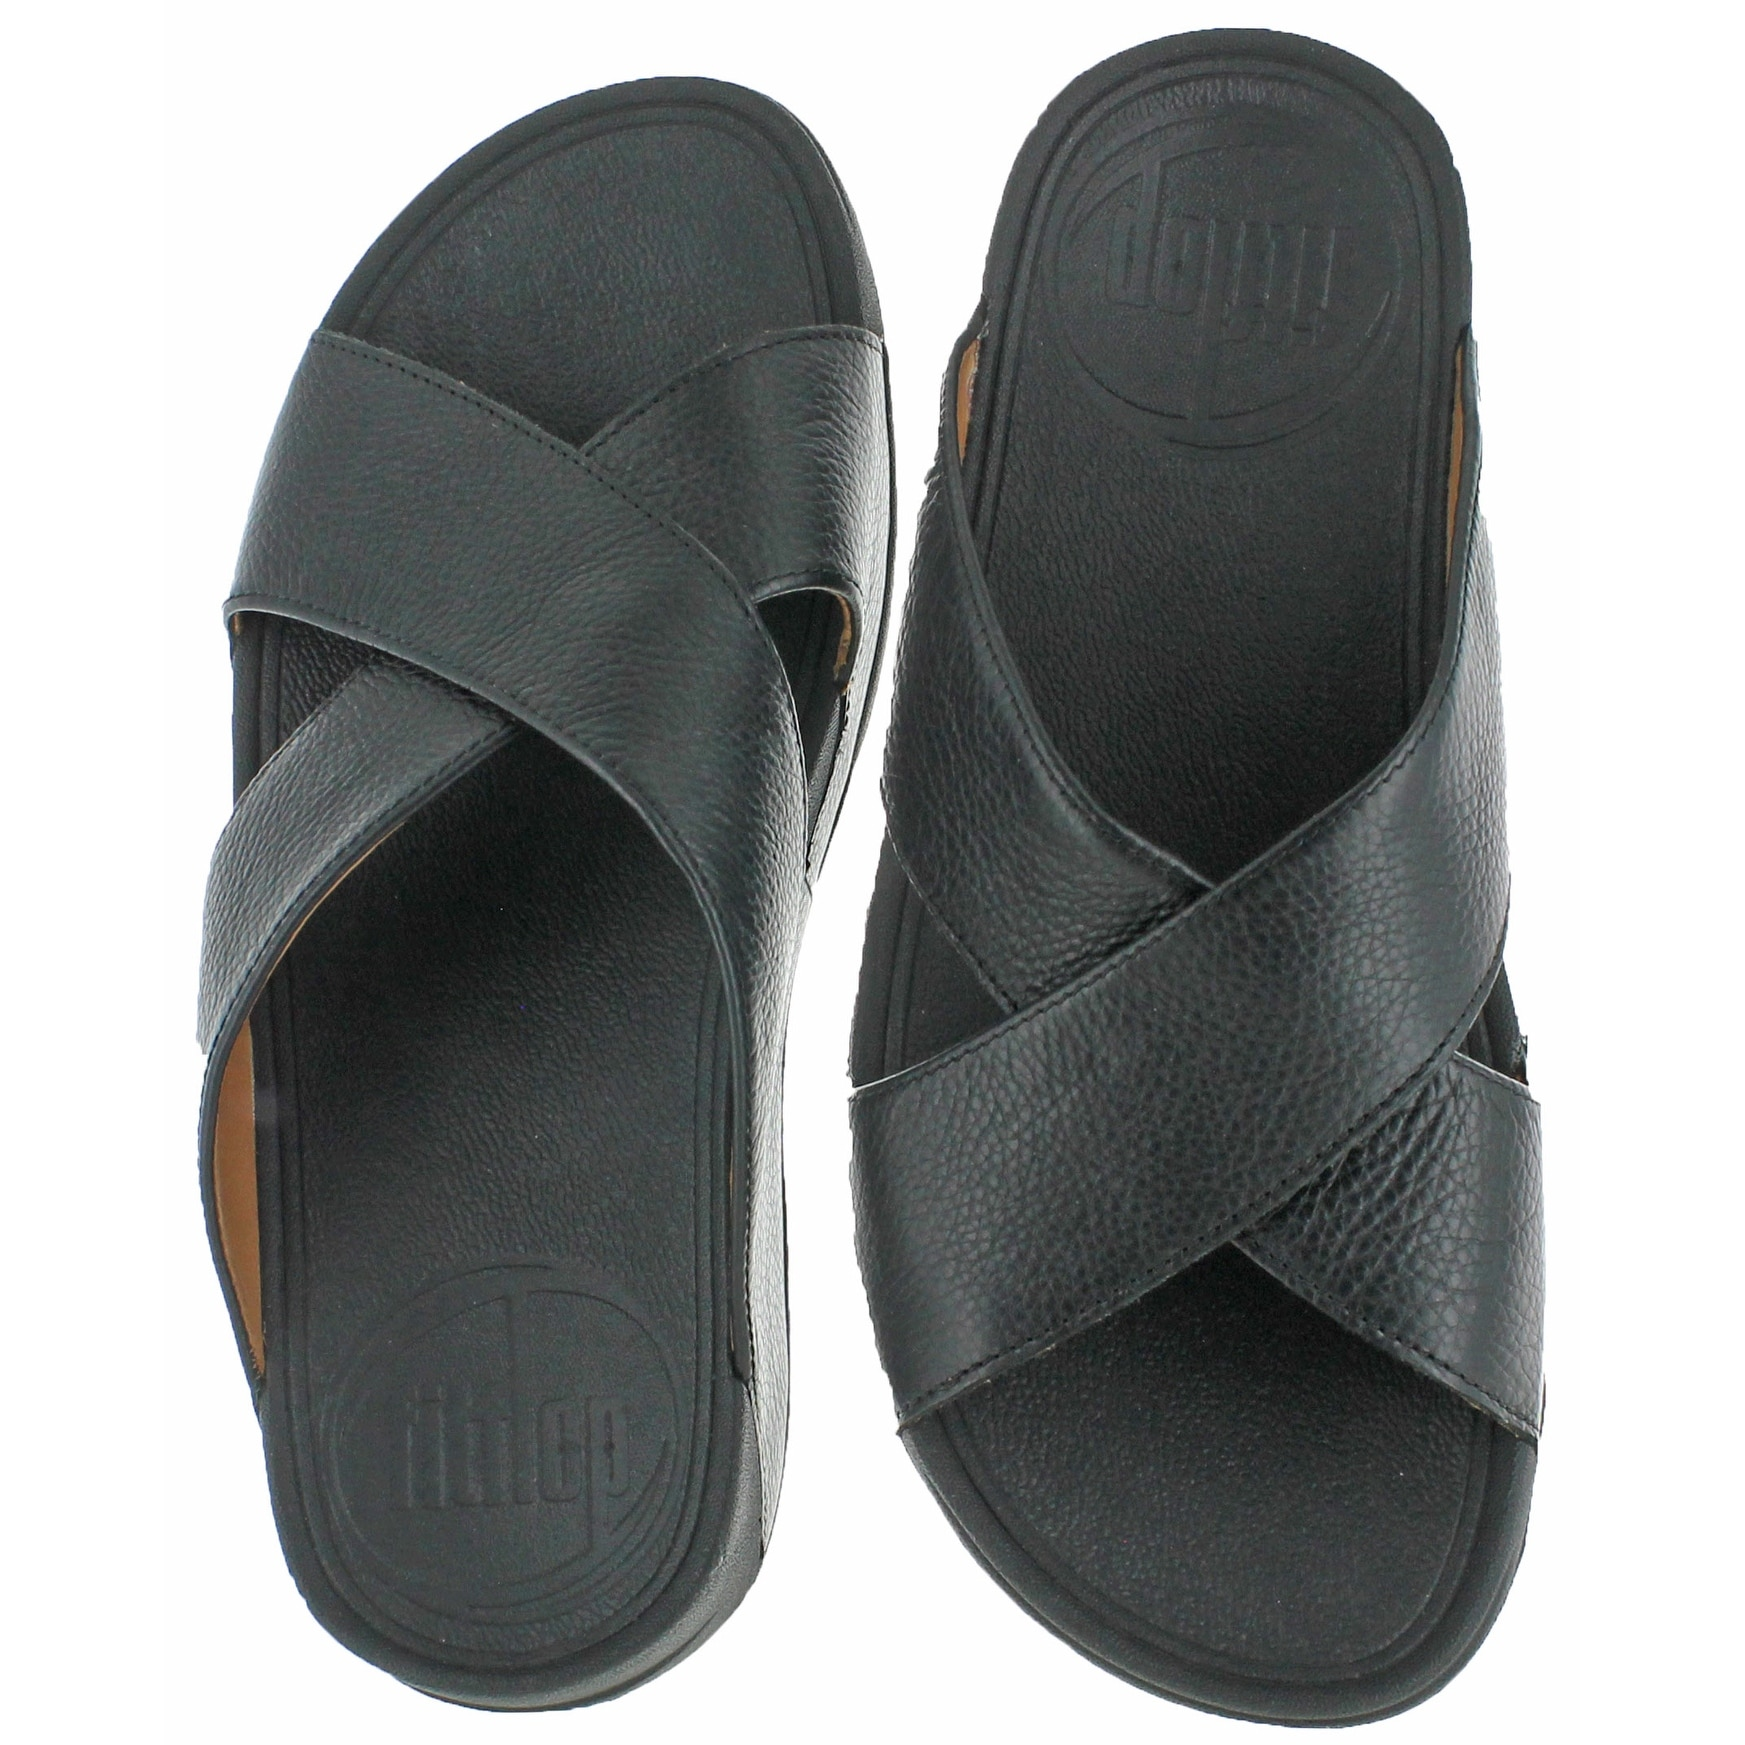 0dd573158b01 Shop FitFlop Xosa Men s Leather Criss-Cross Sandals - Free Shipping Today -  Overstock - 20636429